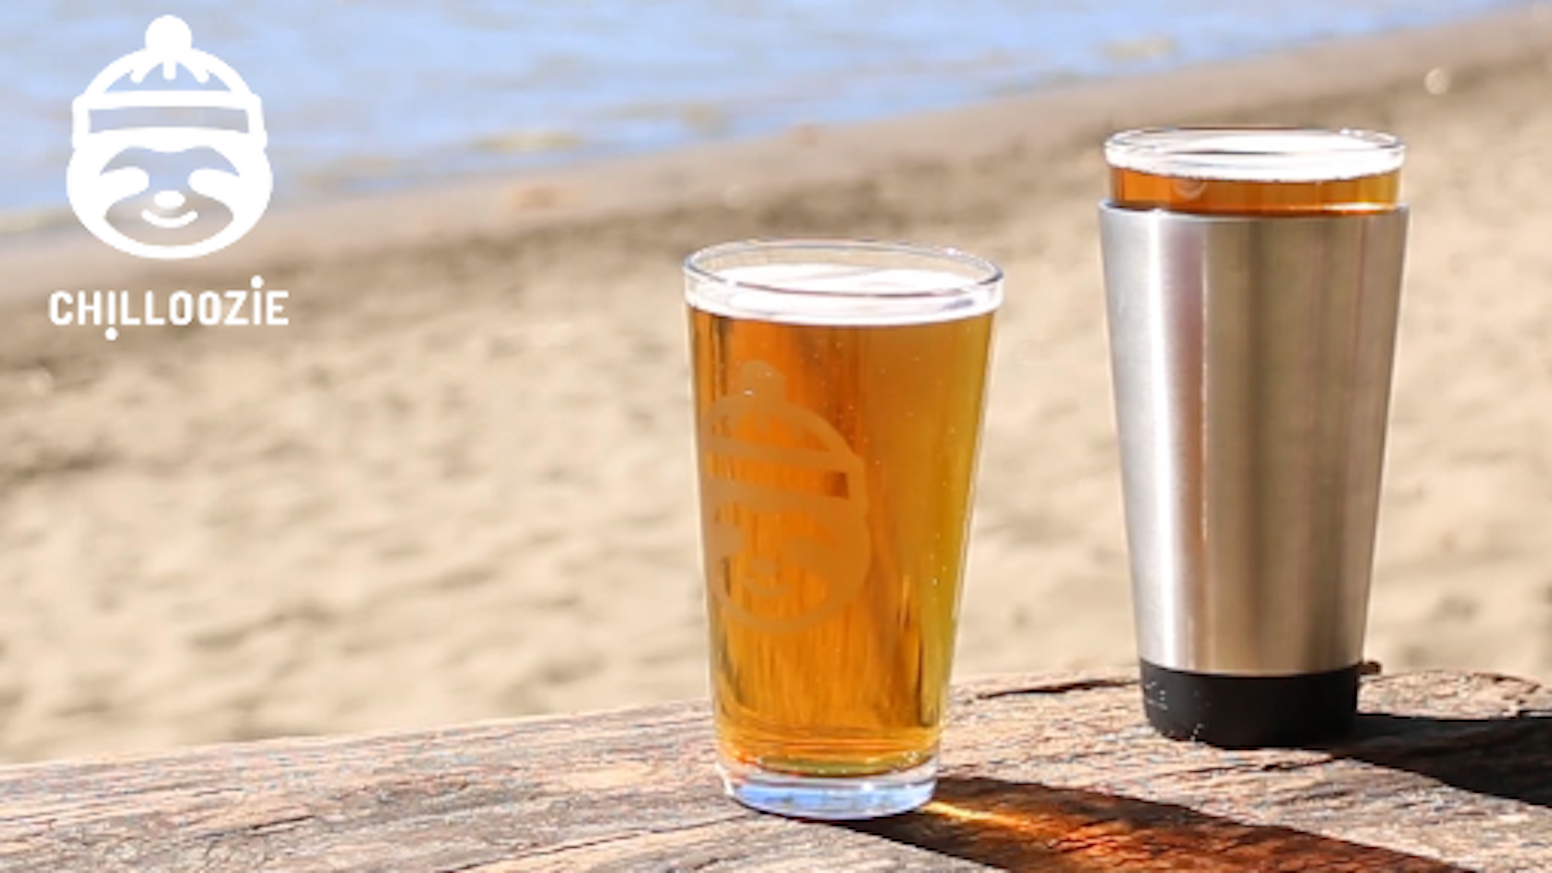 CHILLOOZIE is the first coozie for a pint glass that will keep your beer cold until the very last sip!